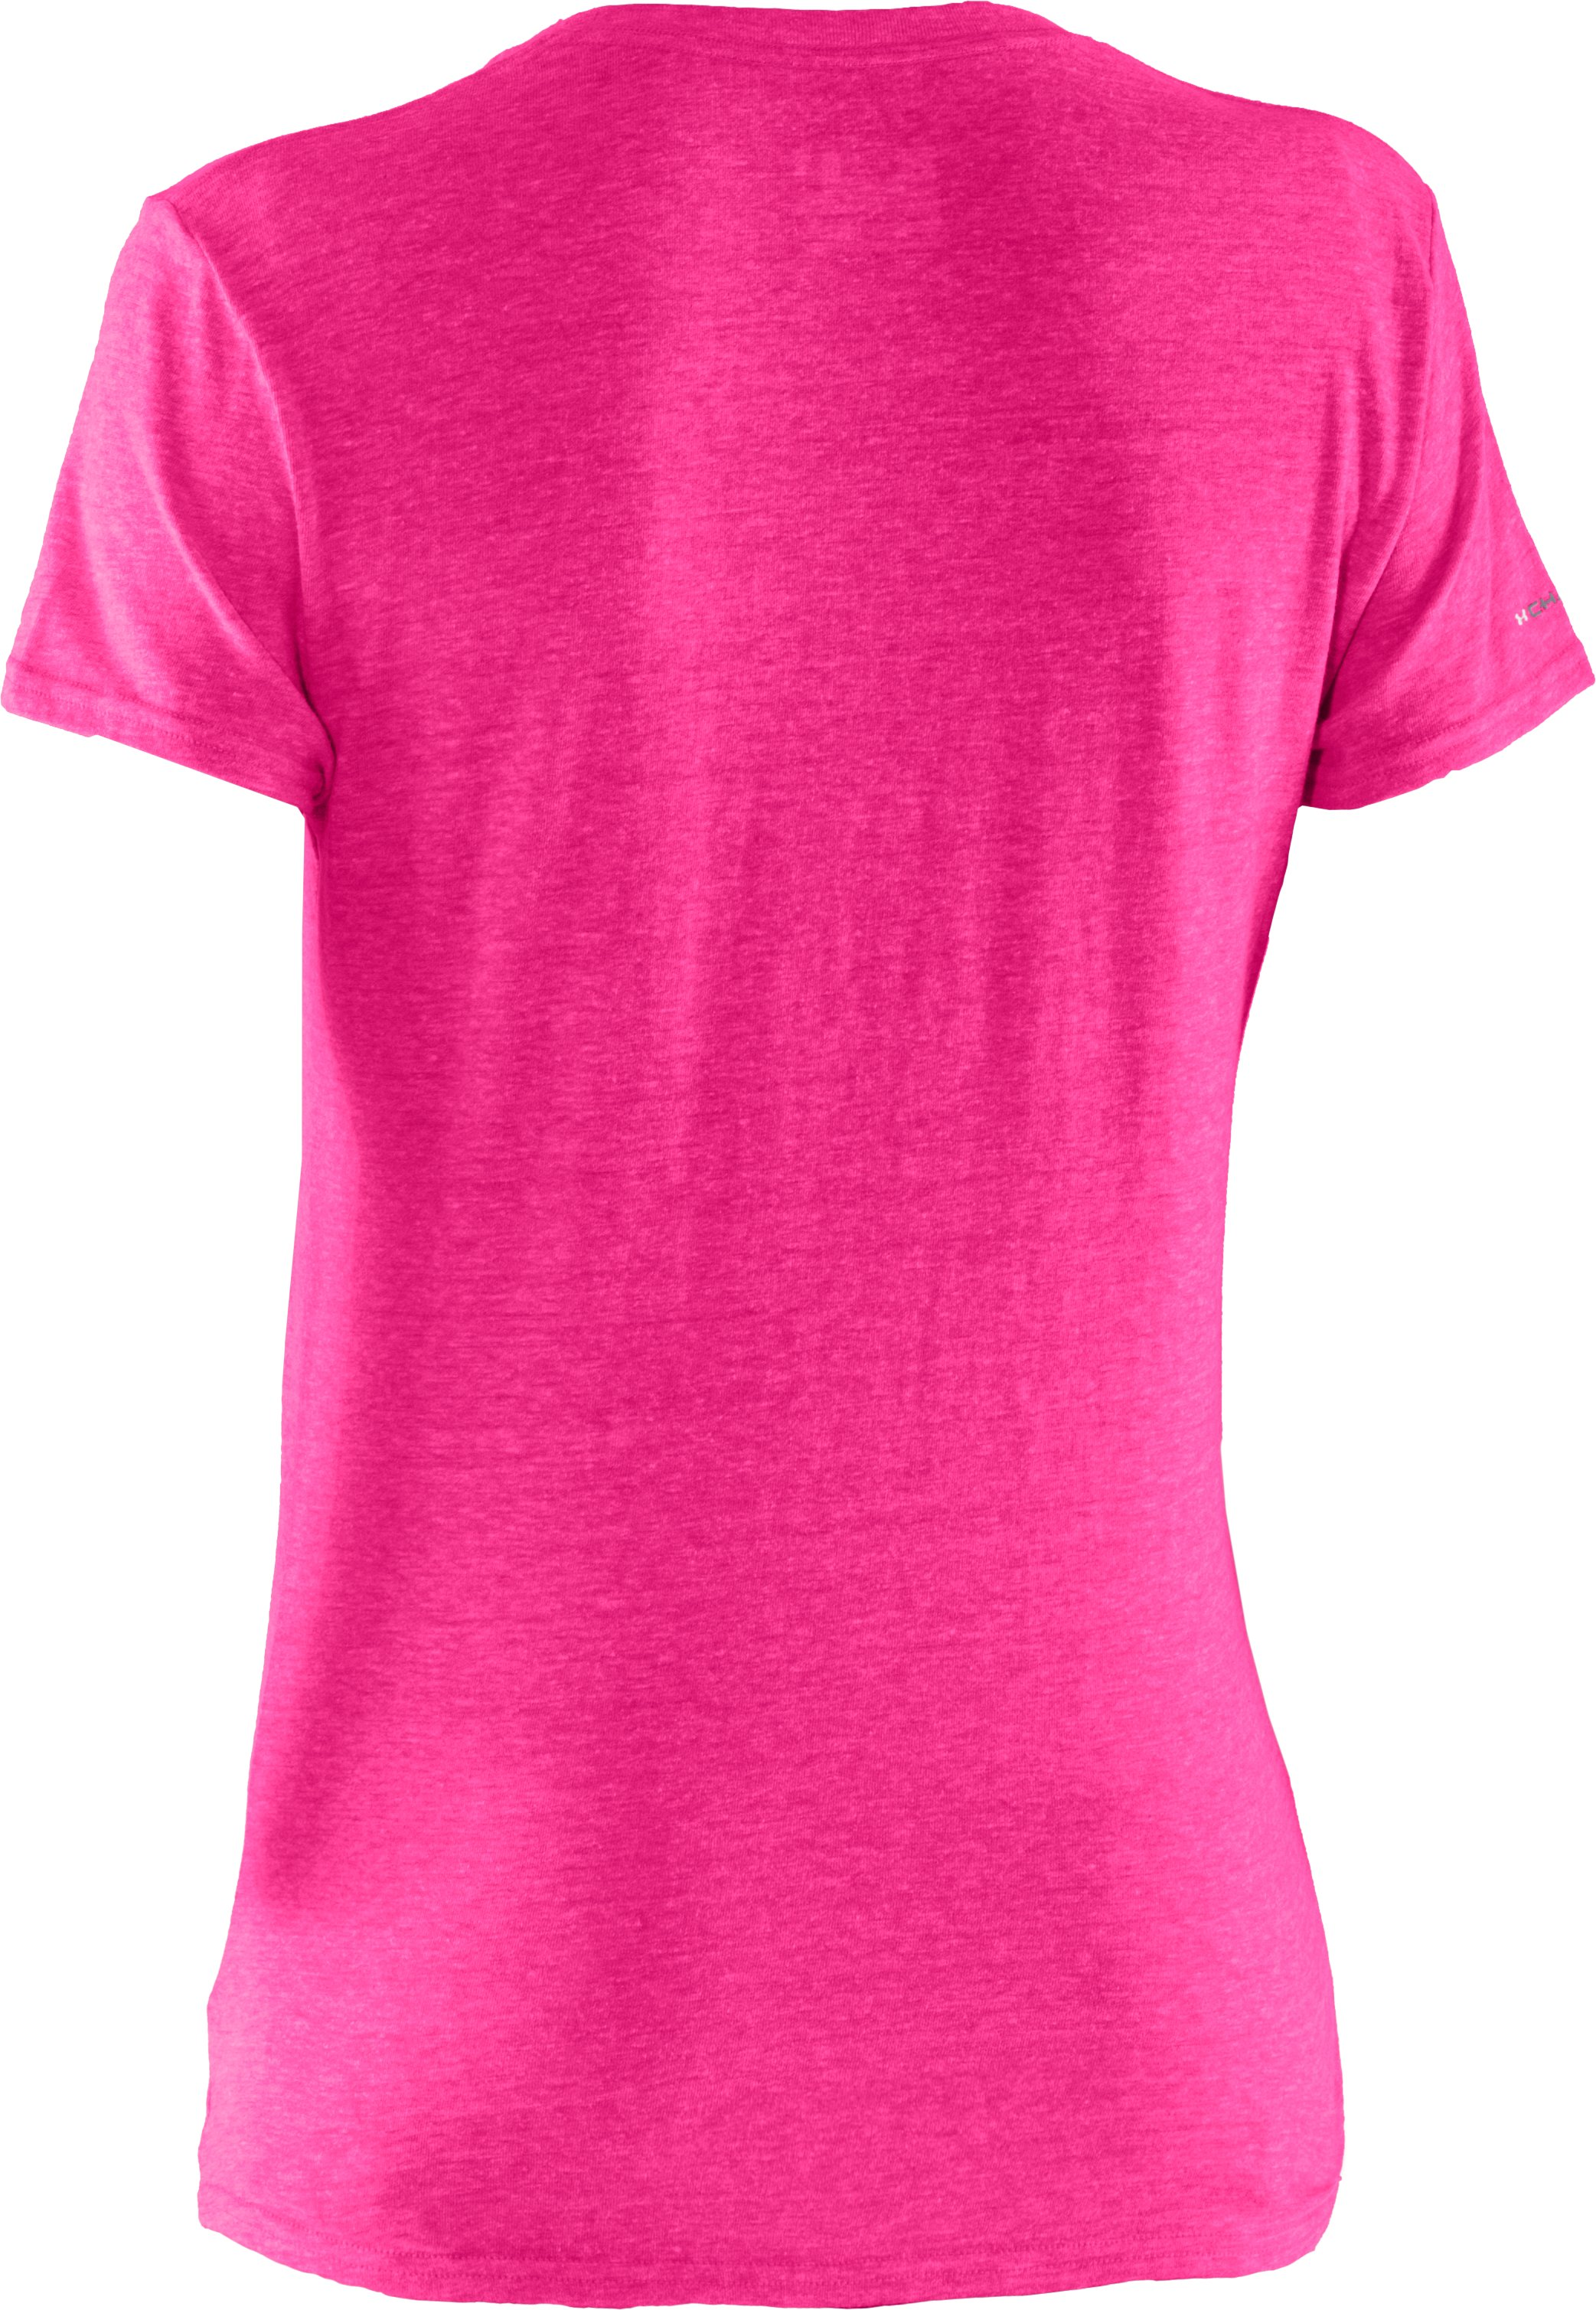 Women's Charged Cotton® Undeniable T-Shirt, PINKADELIC